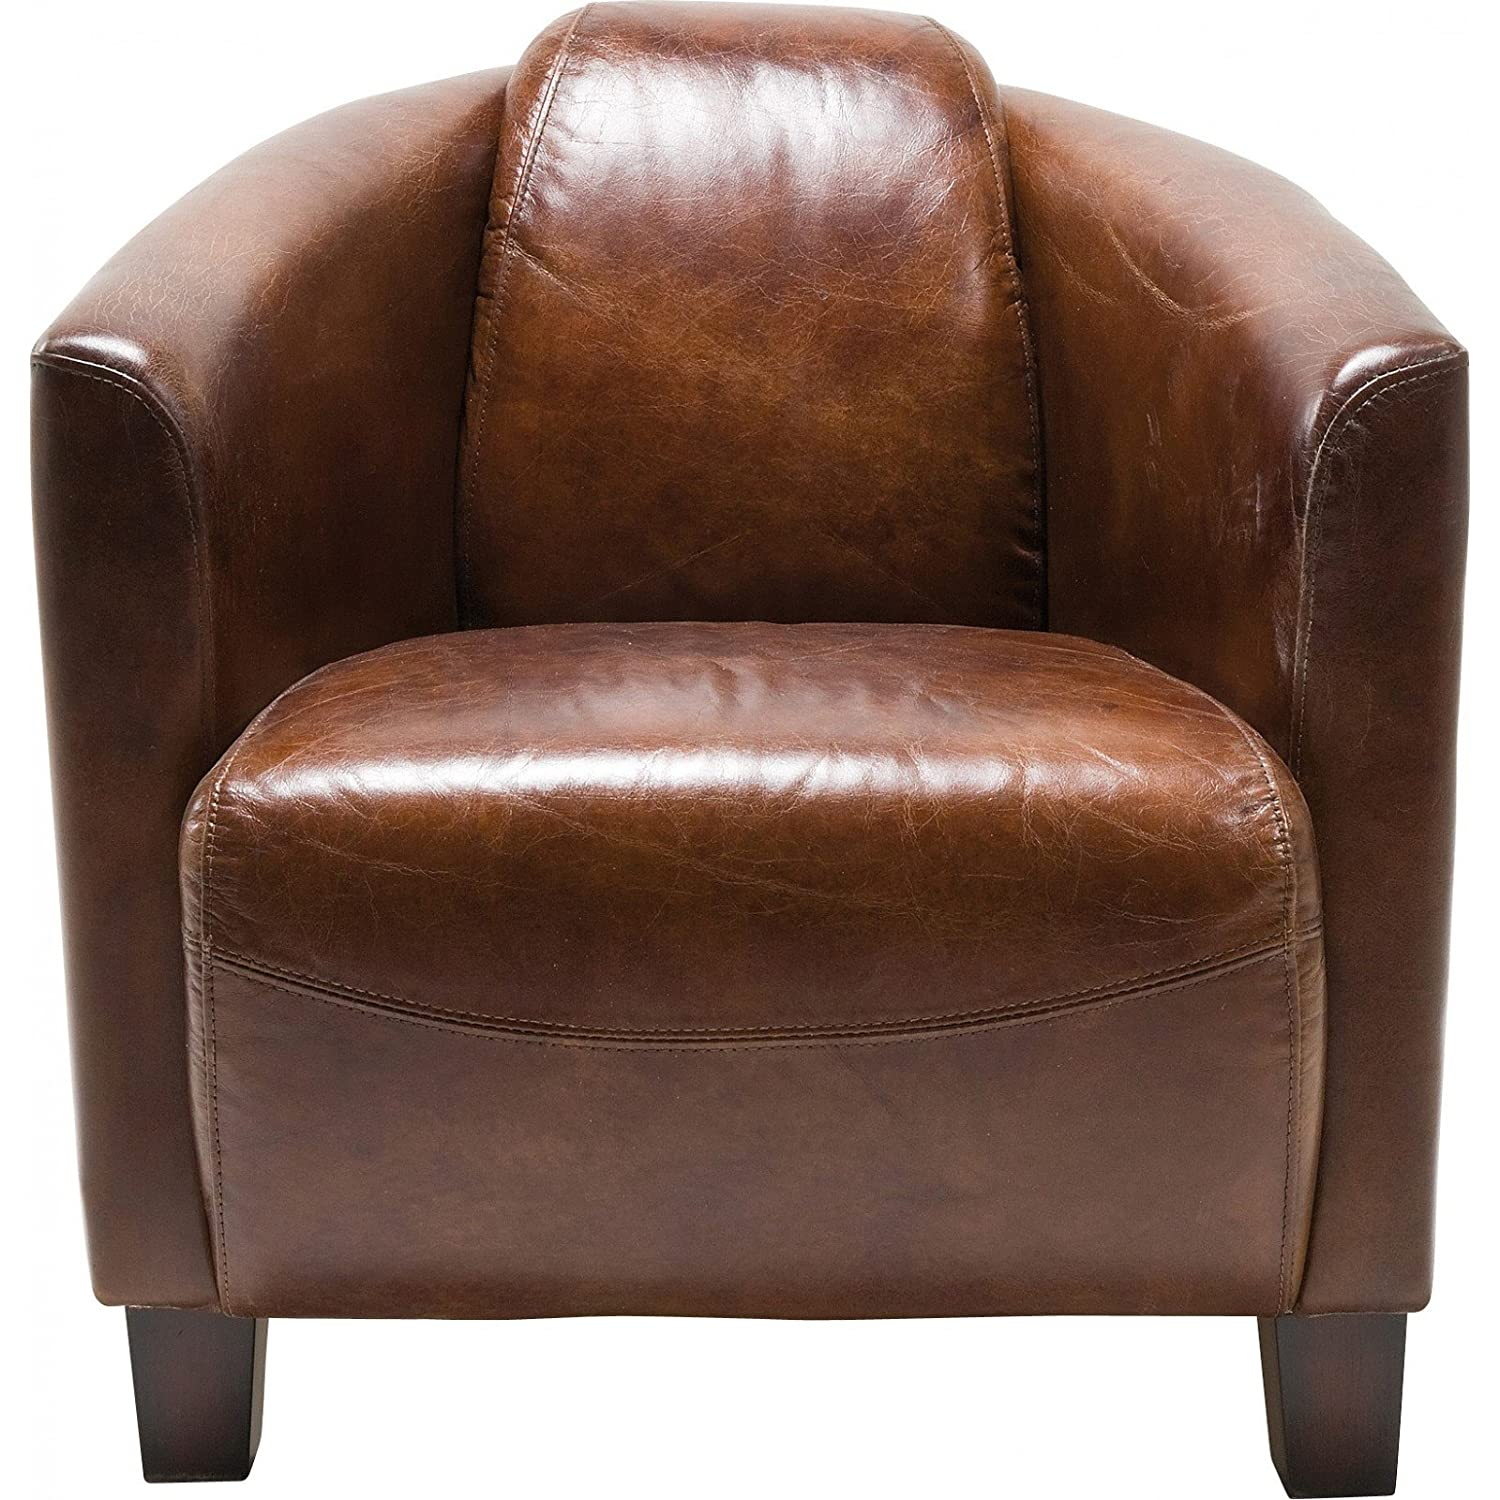 Lounge sessel braun  Amazon.de: Kare 76948 Sessel Cigar Lounge, braun